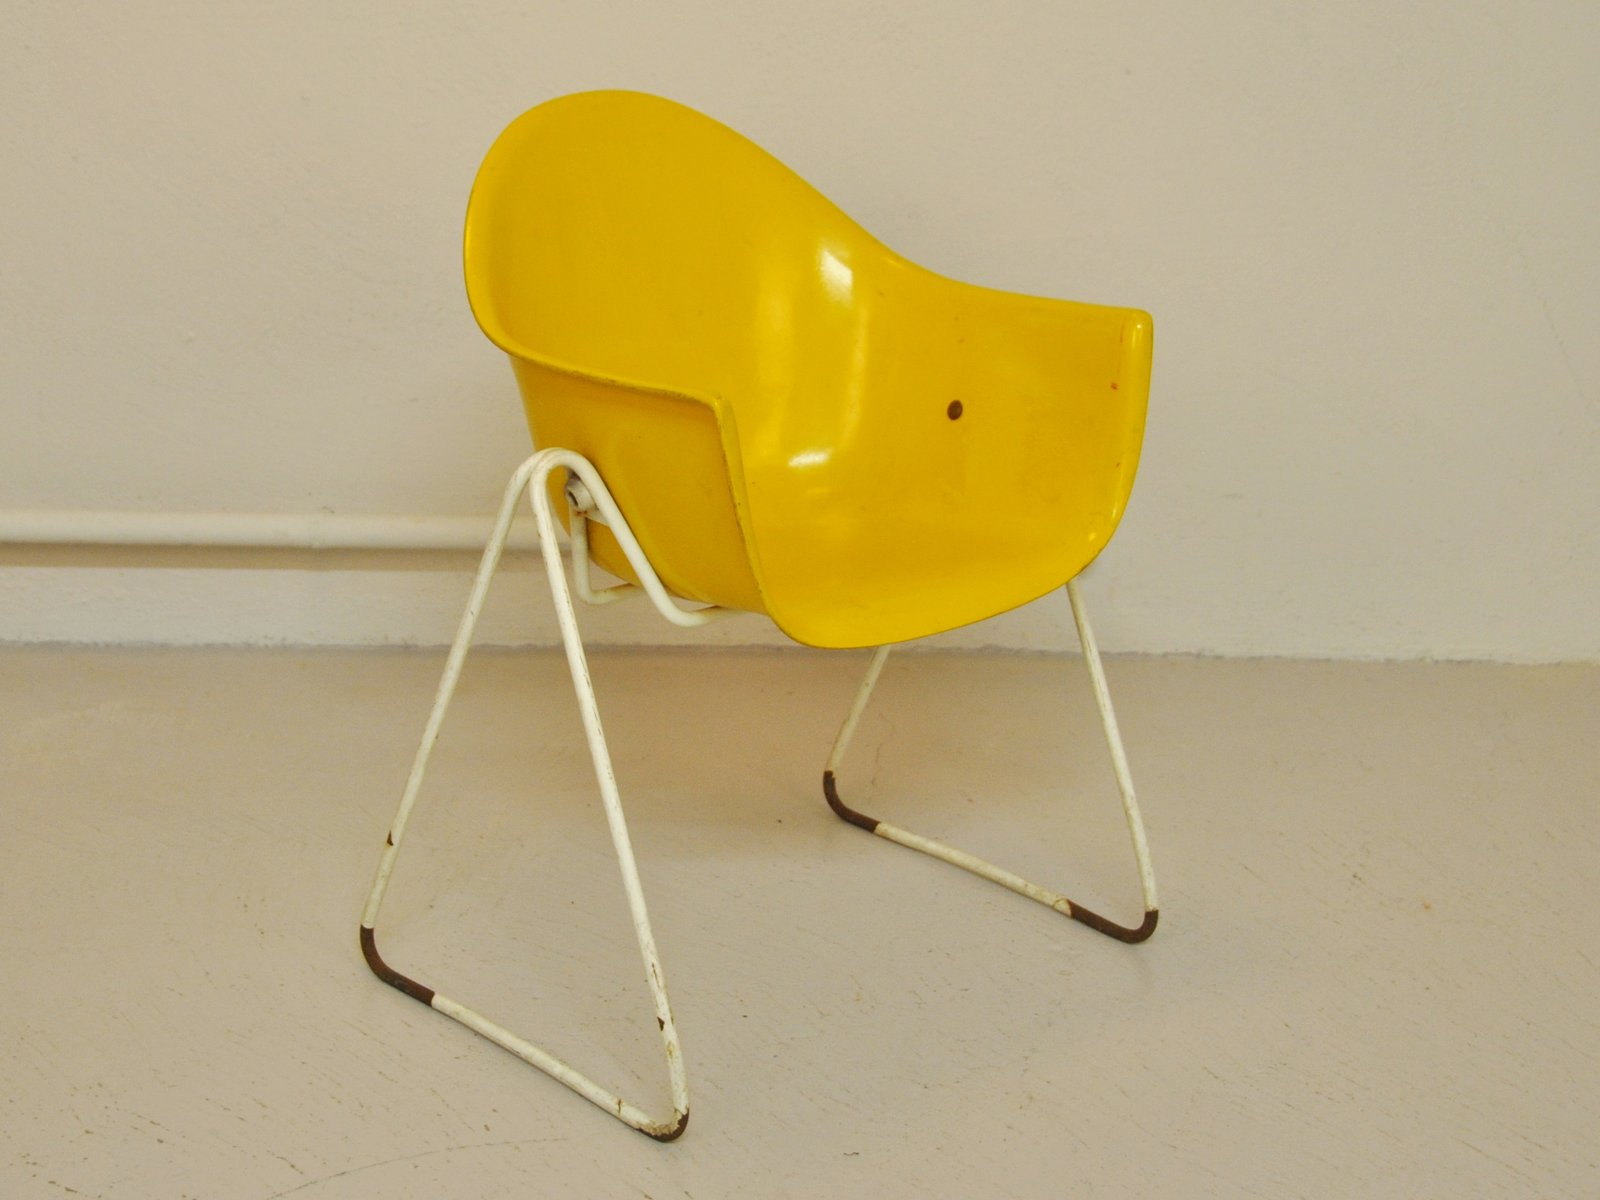 Beautiful Yellow Chair rtty1com rtty1com : yellow children s chair by walter papst for wilkhahn 1960s from rtty1.com size 1600 x 1200 jpeg 72kB